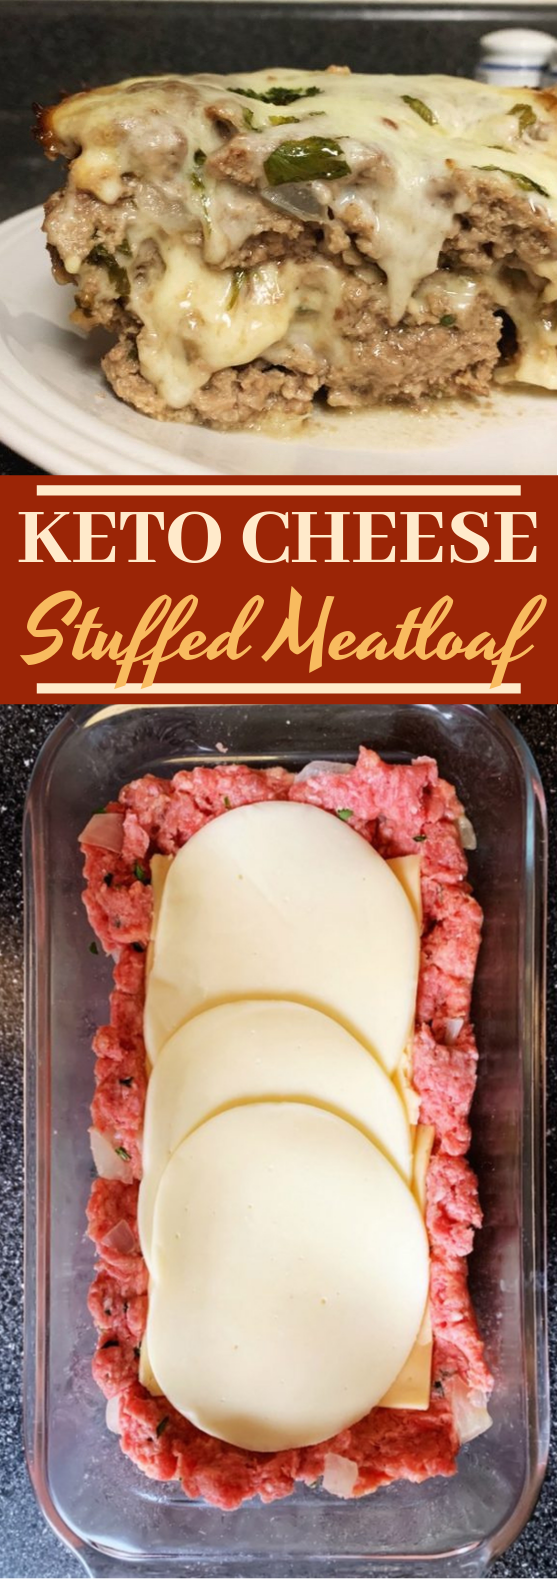 Keto Cheese Stuffed Meatloaf #keto #lowcarb